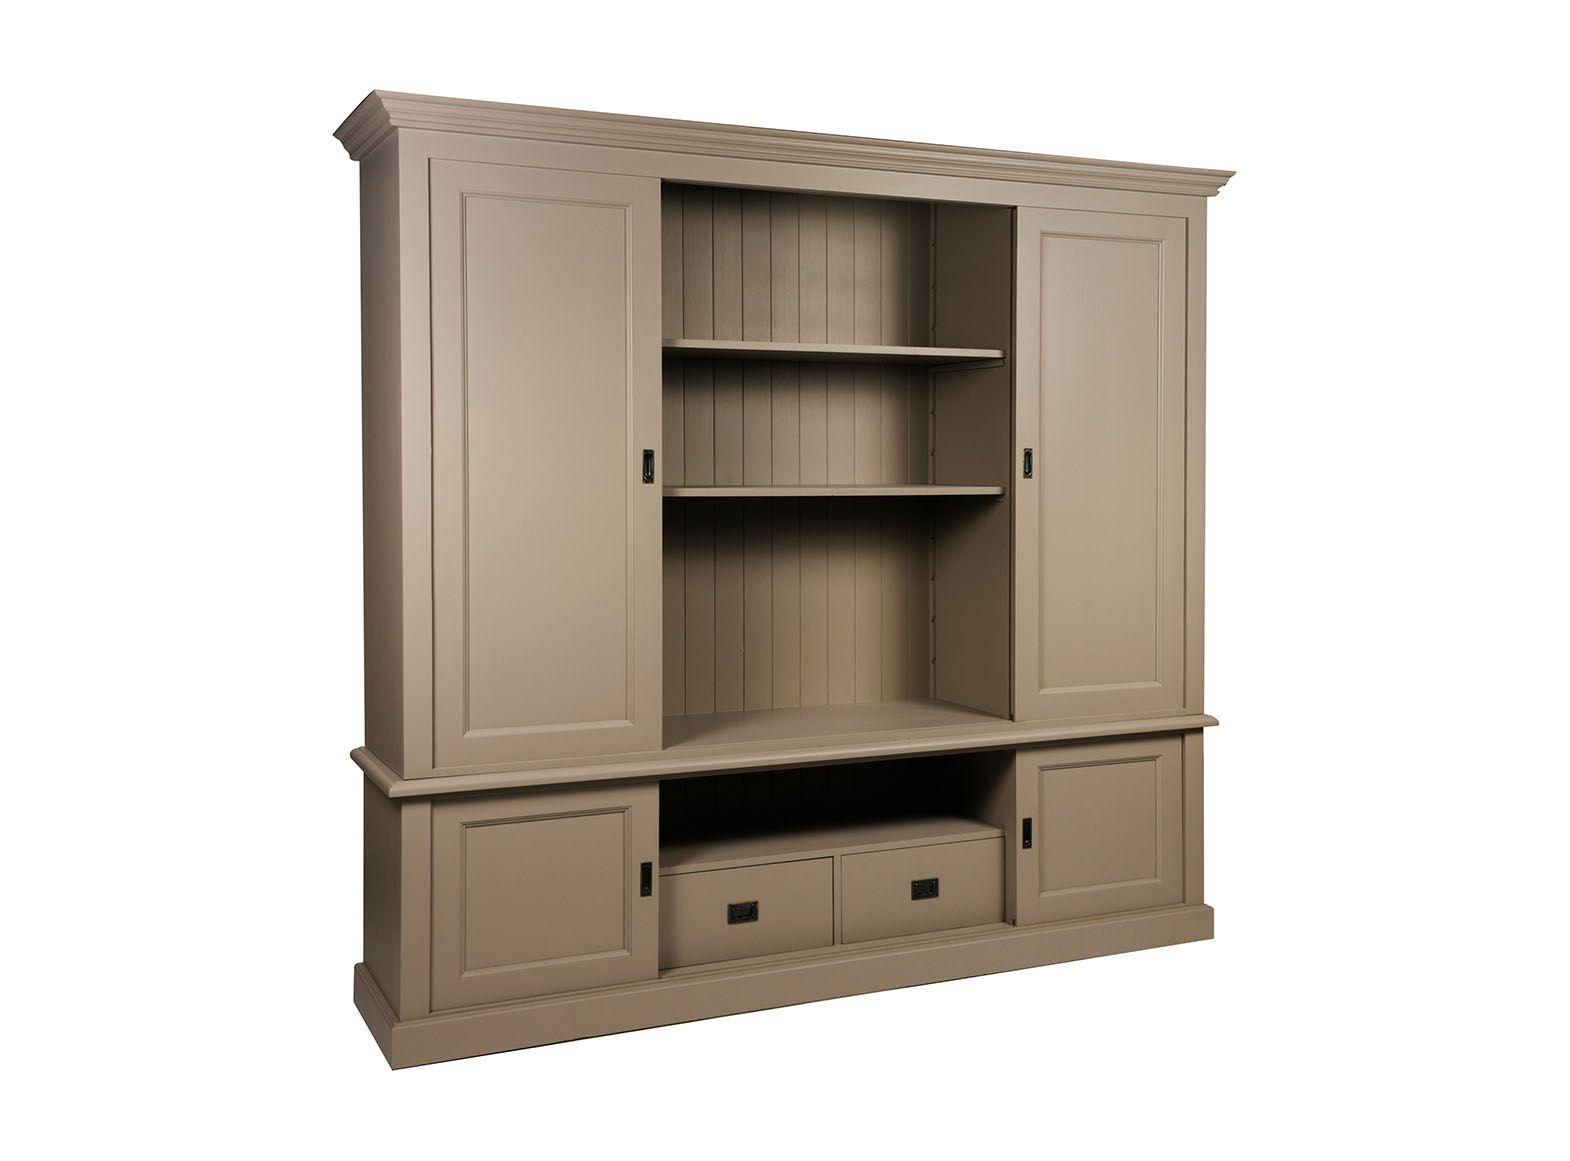 Meuble multim dia biblioth que portes coulissantes jiceka d597 Meuble bureau multimedia